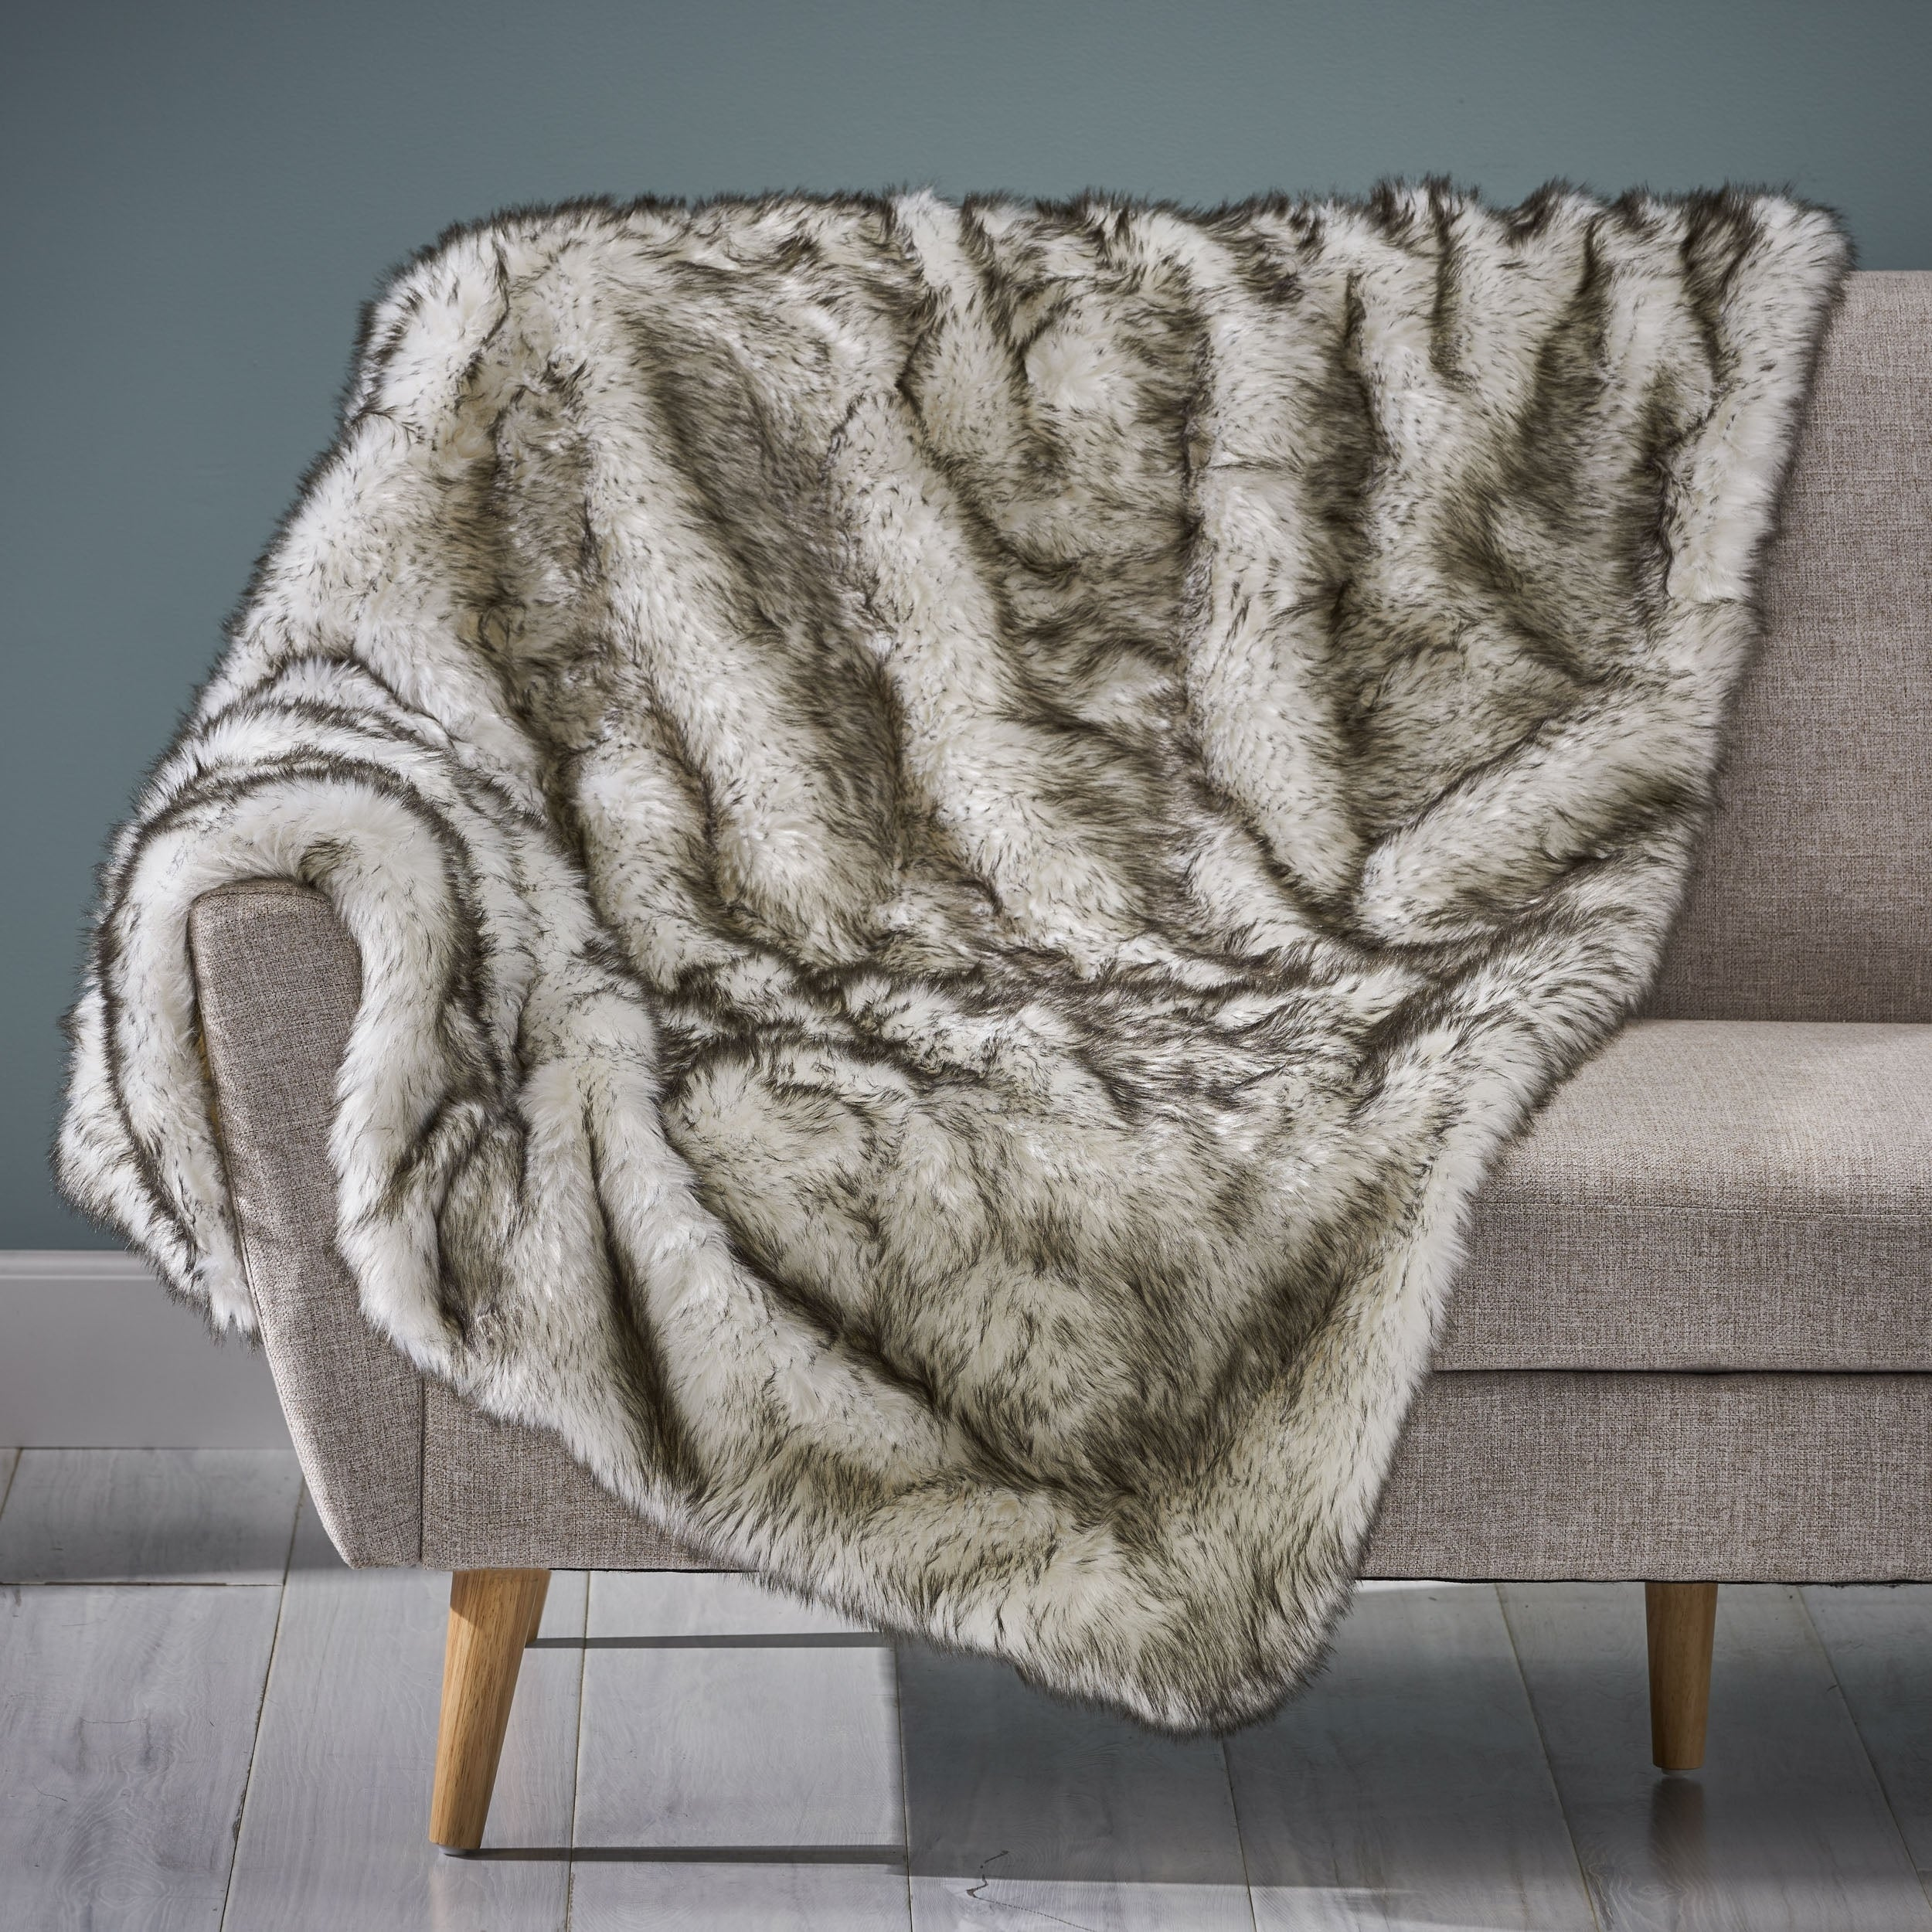 Warrin Streak Faux Fur Throw Blanket By Christopher Knight Home On Sale Overstock 27888511 Black White White